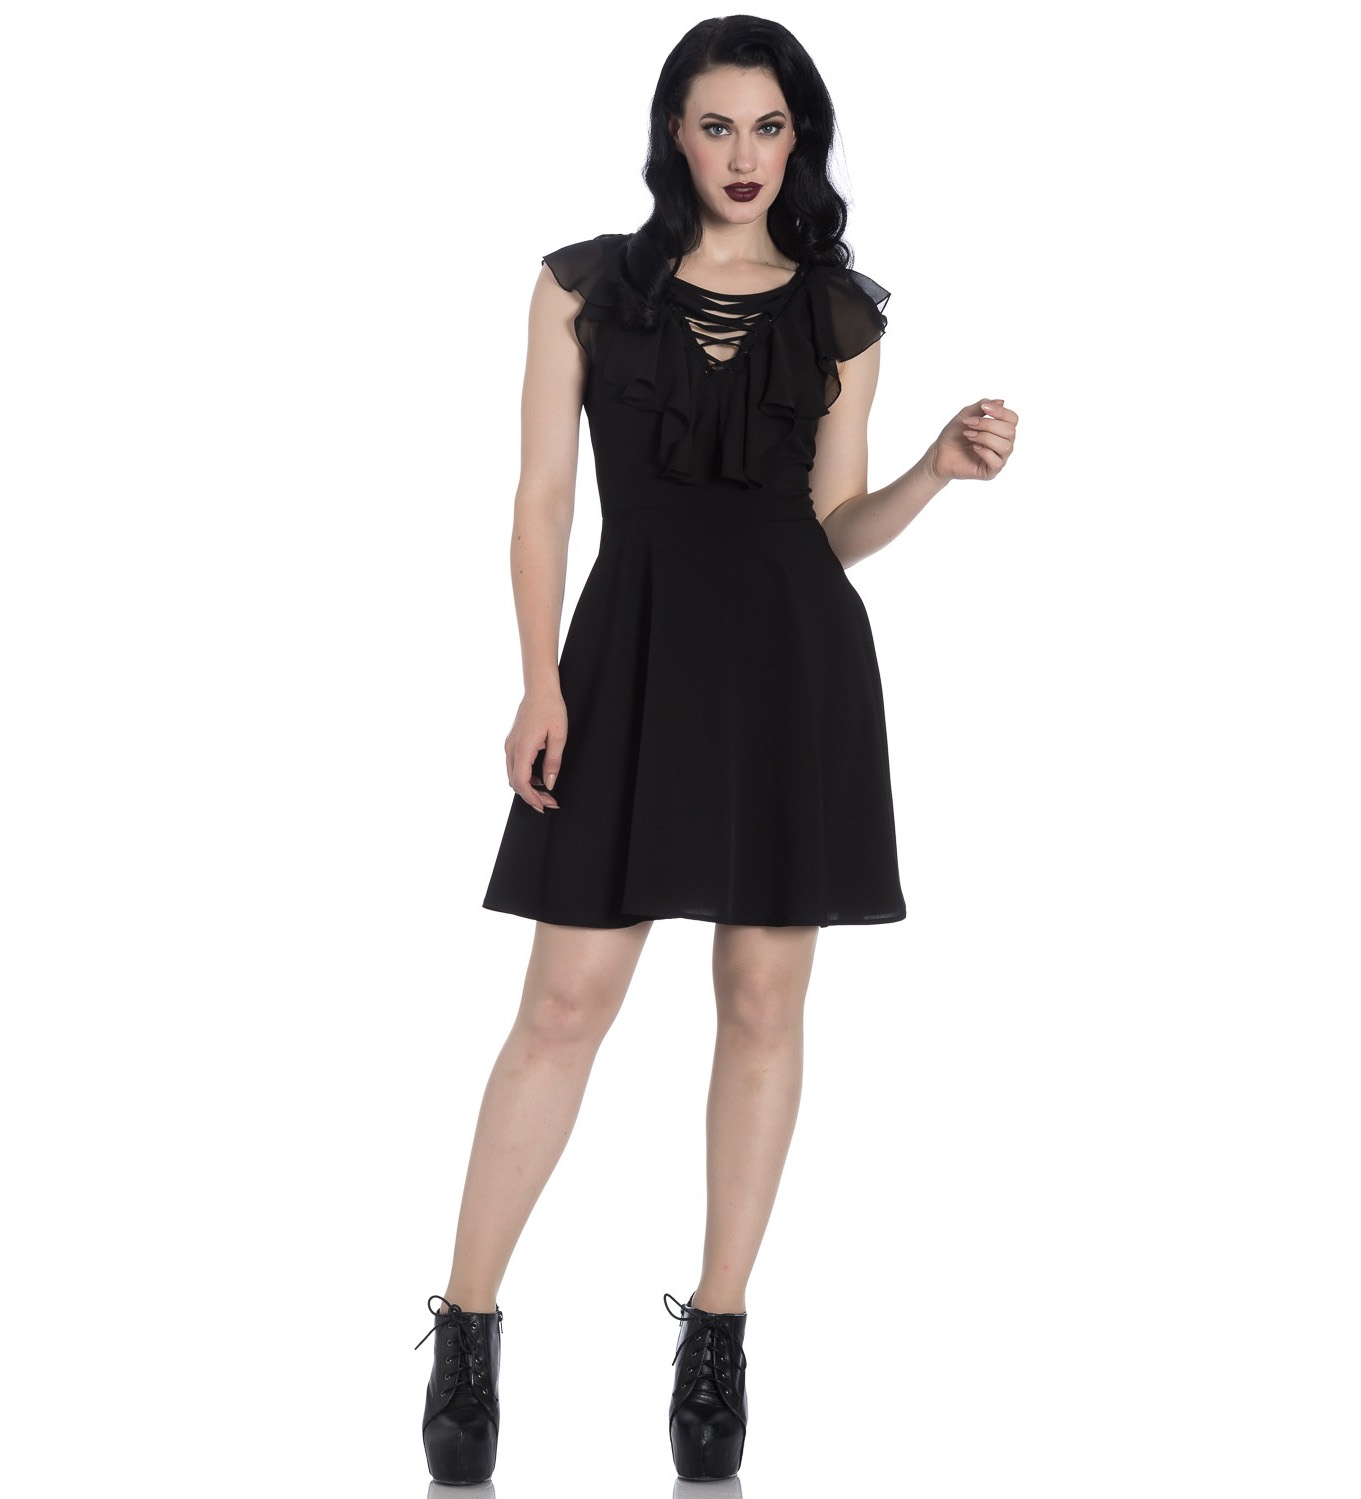 Hell-Bunny-Floaty-Lace-Up-Goth-Witch-Punk-Mini-Dress-ONYX-Black-All-Sizes thumbnail 15